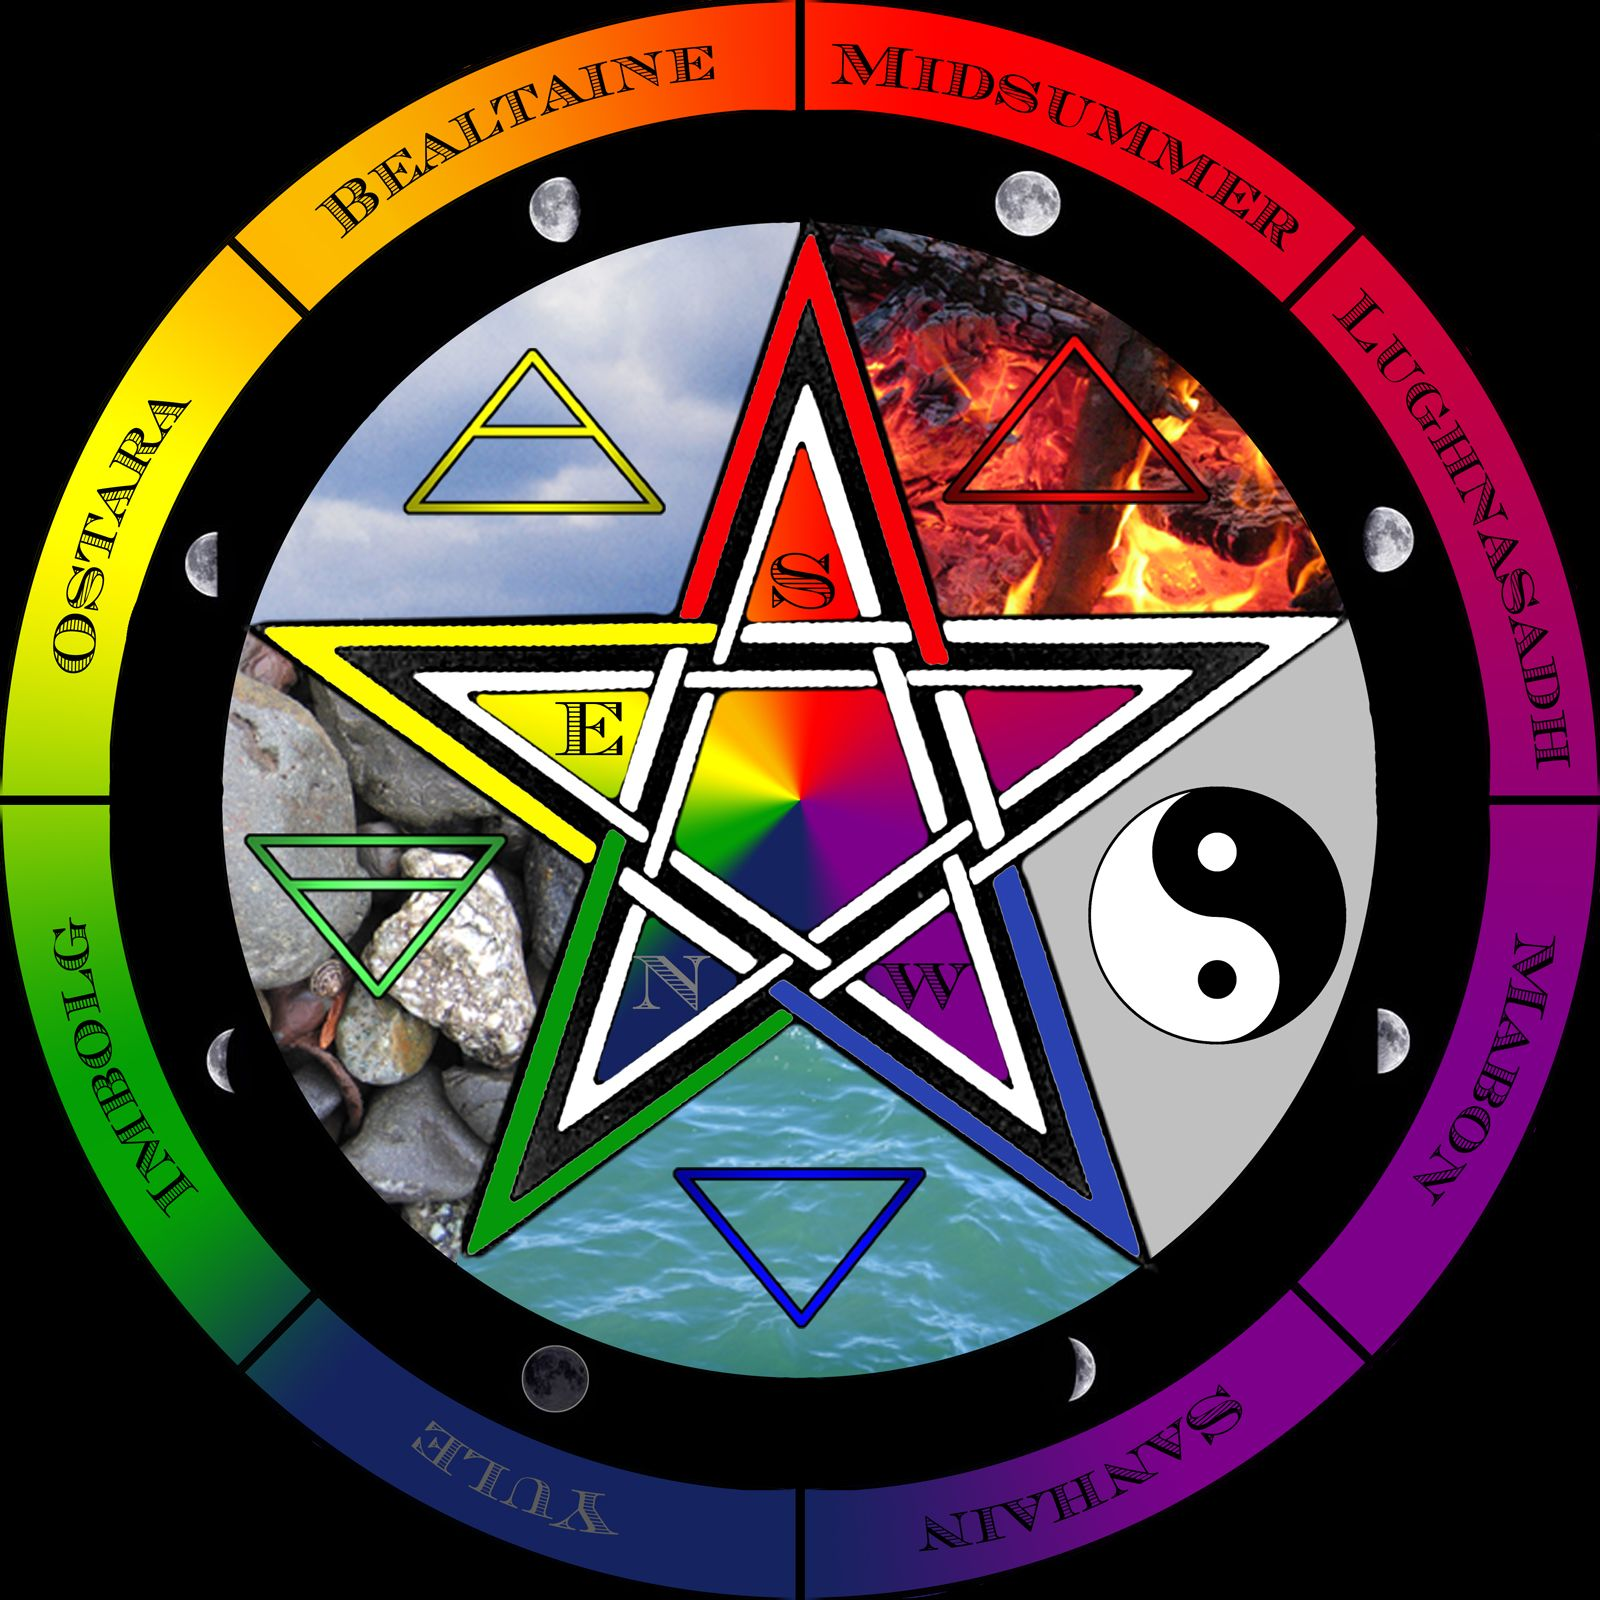 all about the religion wicca essay Spirituality / religion how i found wicca how i  i wont talk about in this essay but it made me realized that  all makes sense of how i found wicca.